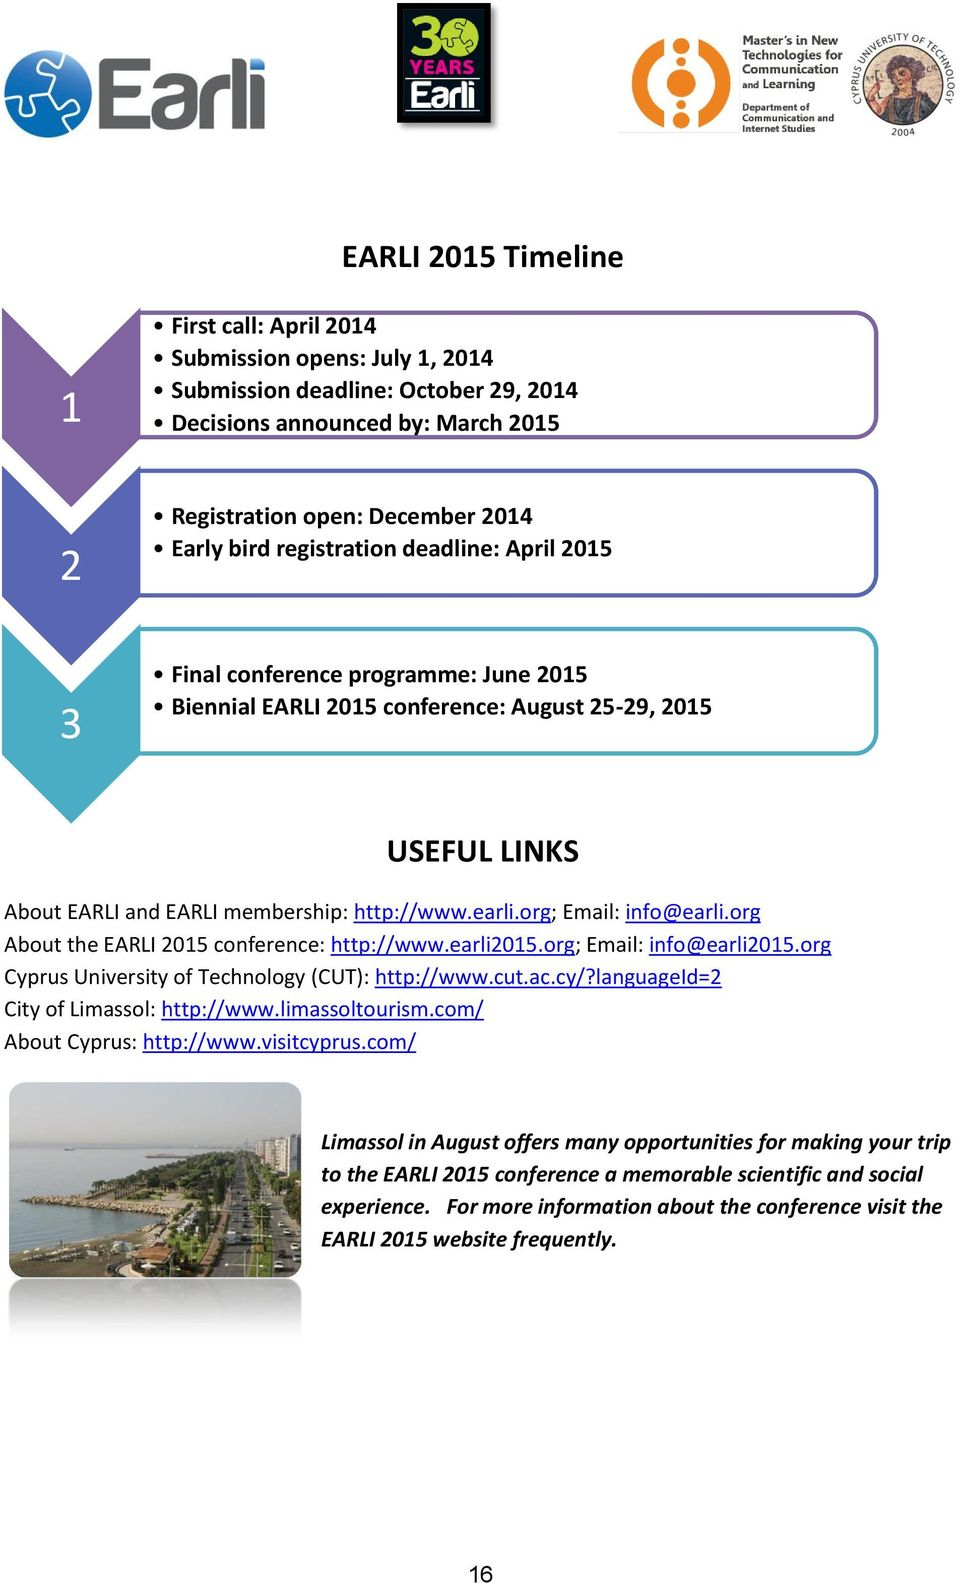 org; Email: info@earli.org About the EARLI 2015 conference: http://www.earli2015.org; Email: info@earli2015.org Cyprus University of Technology (CUT): http://www.cut.ac.cy/?